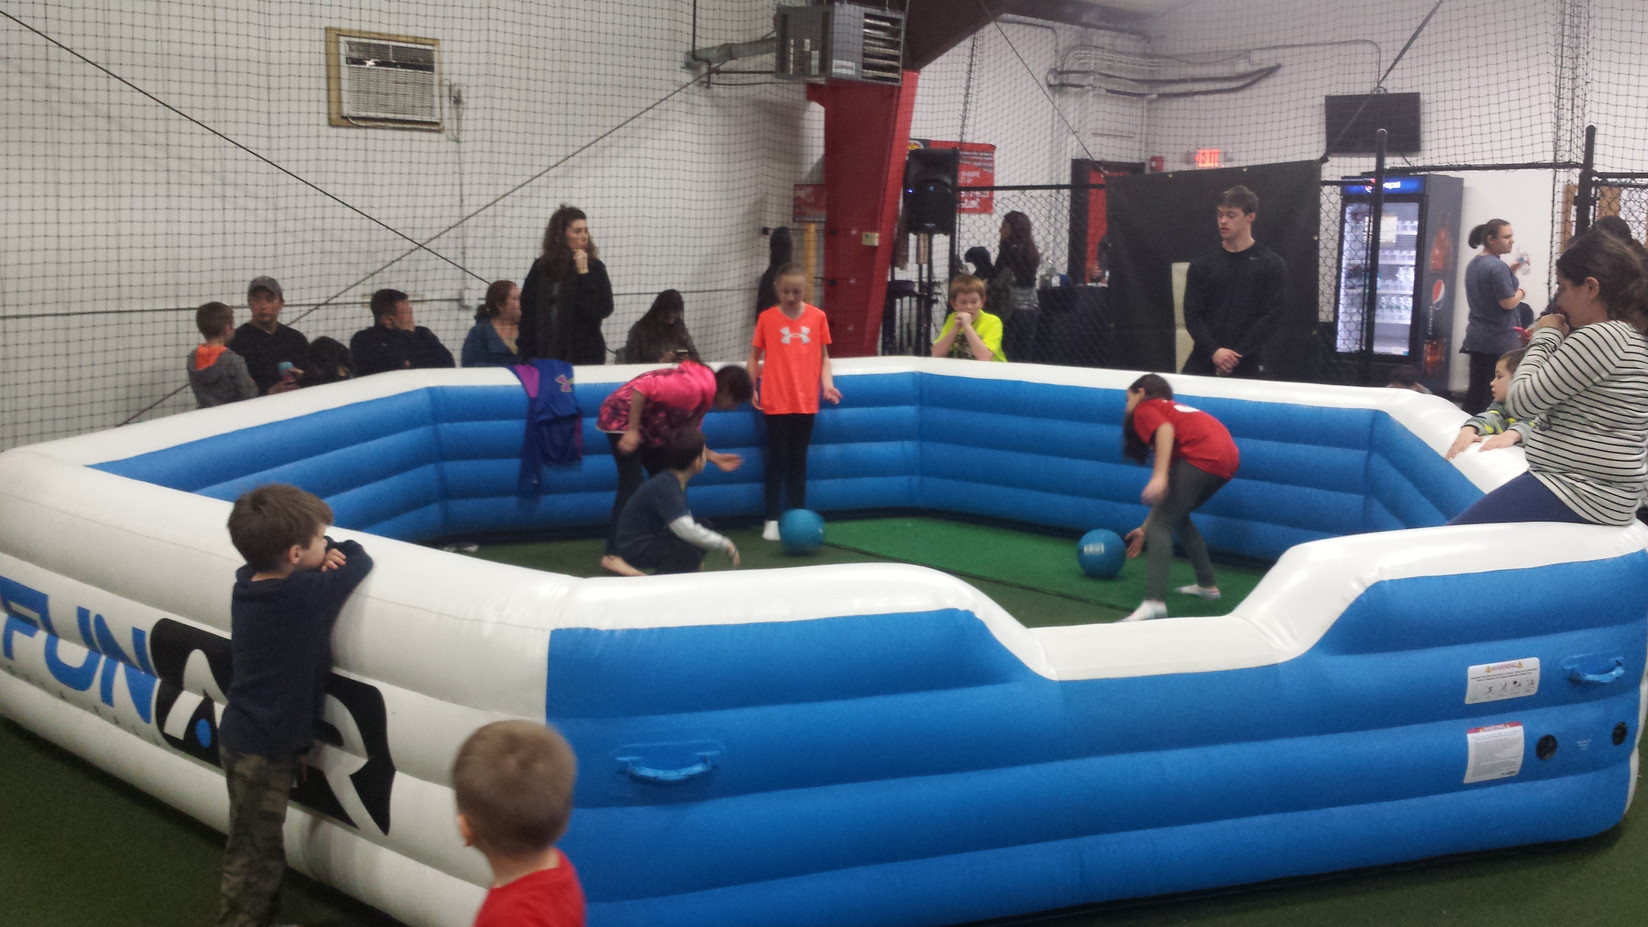 Inflatable-Gaga-Pit-For-Kids.jpg